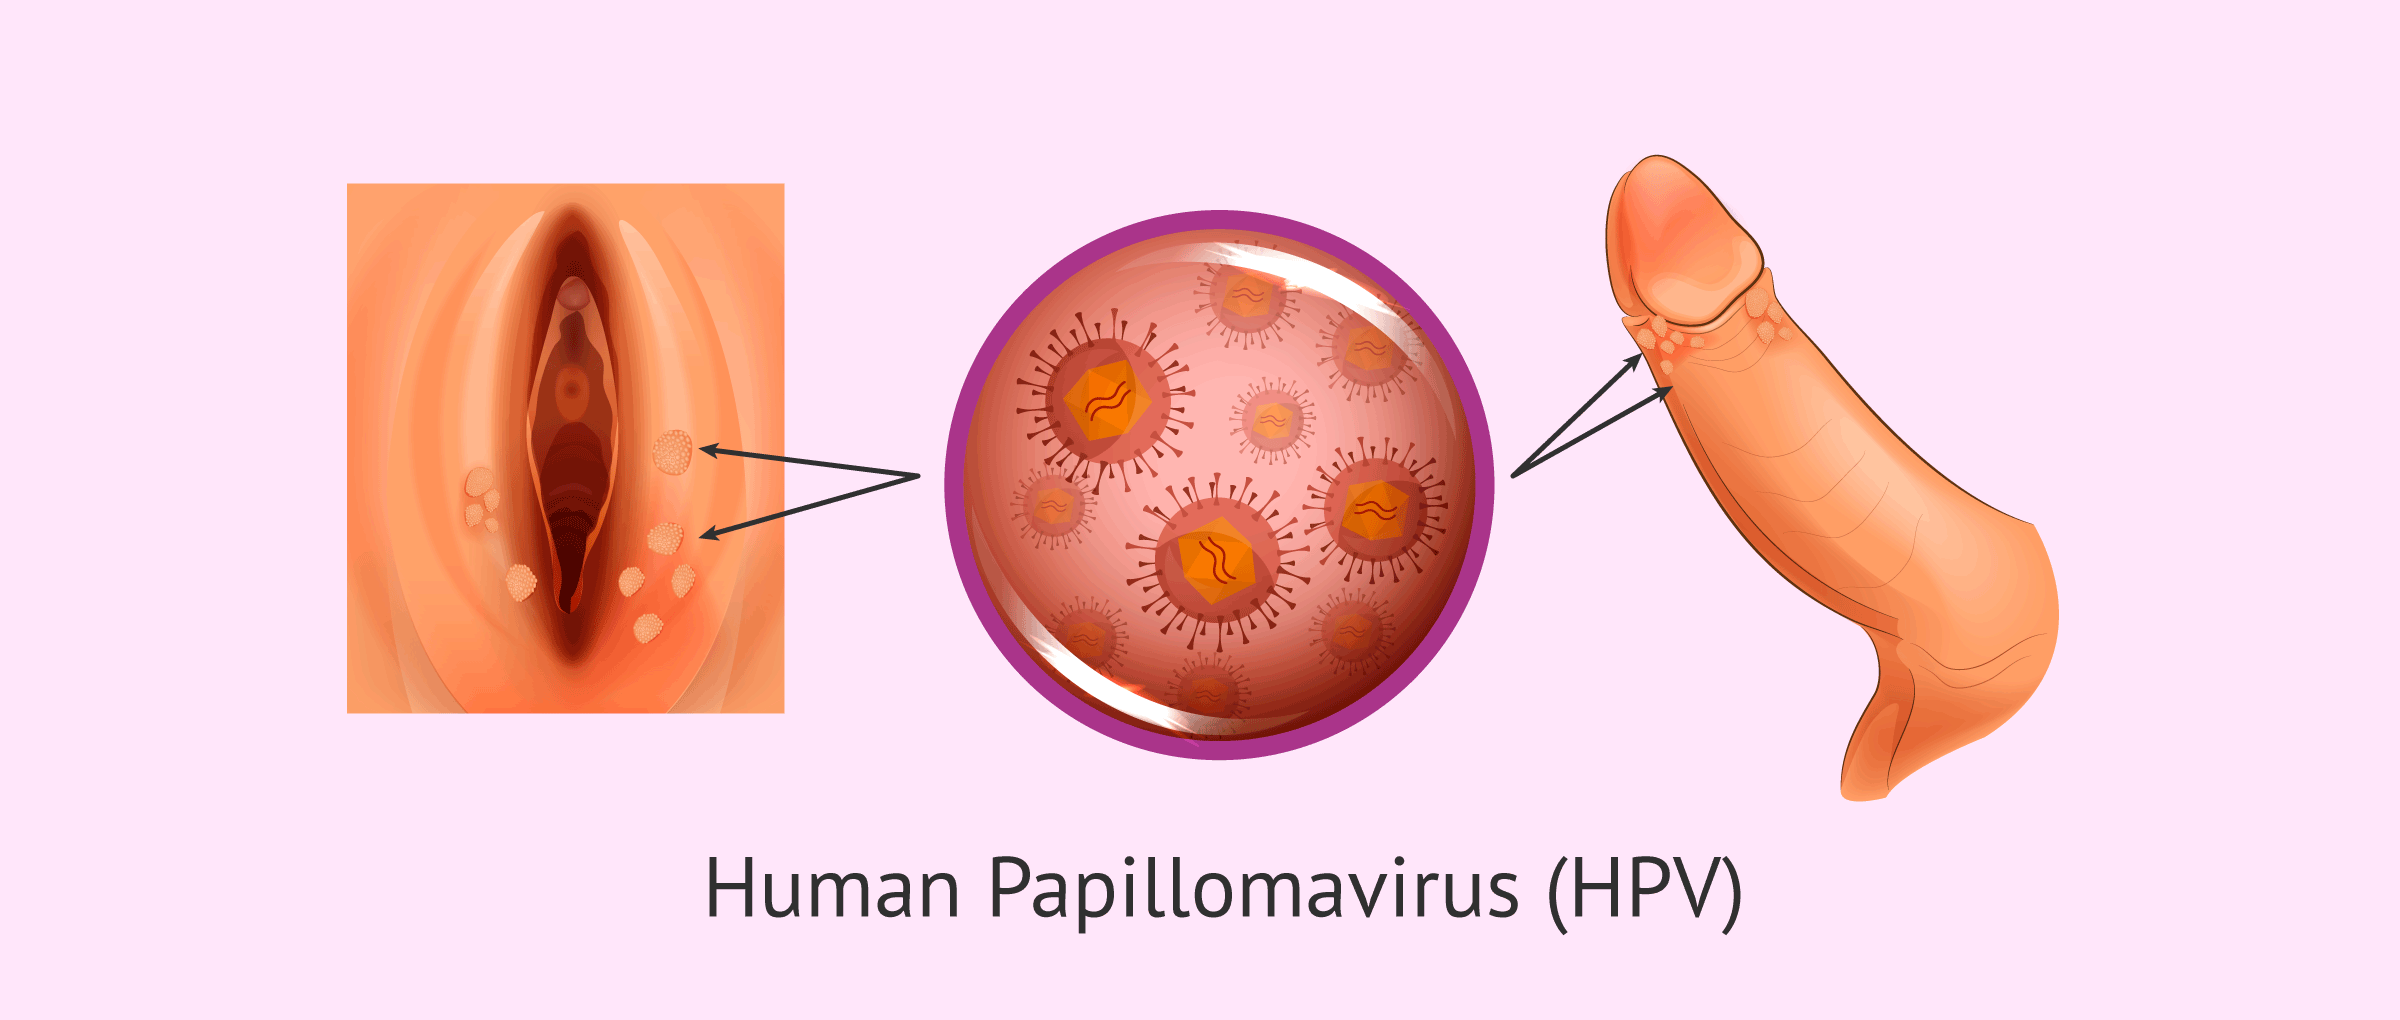 Imagen: Genital Warts caused by HPV